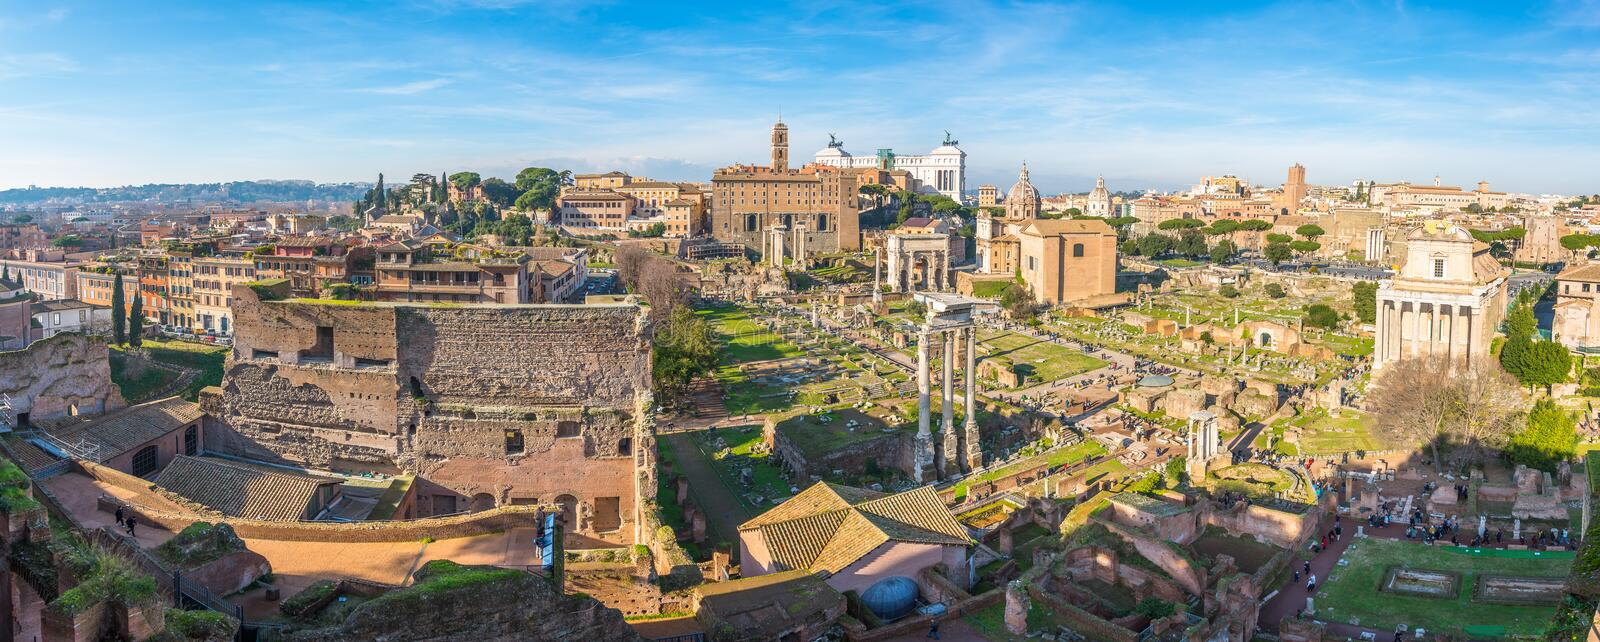 Ancient ruins of Forum panorama in a sunny day in Rome, Italy.  royalty free stock image